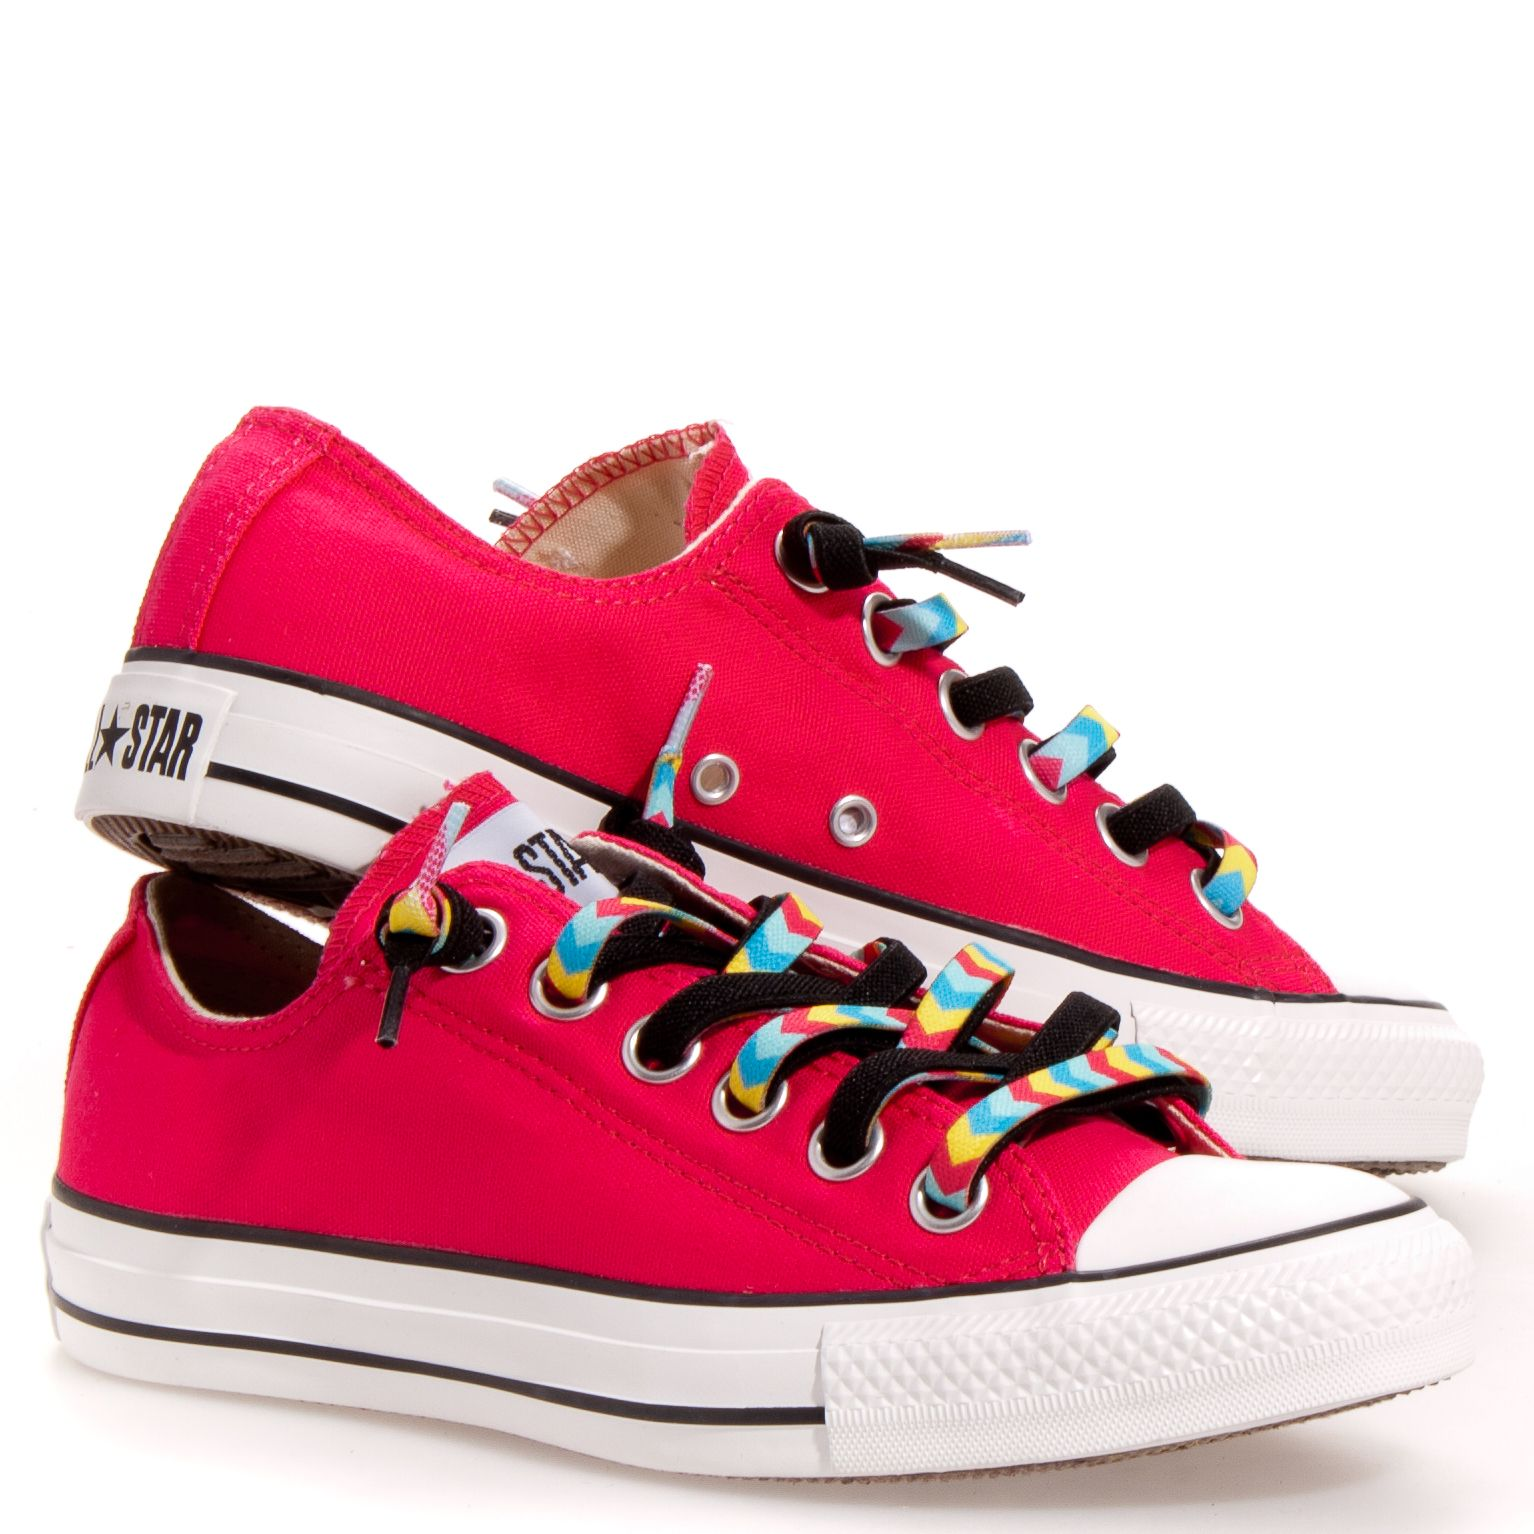 miley cyrus converse shoes tie-dye kits professional